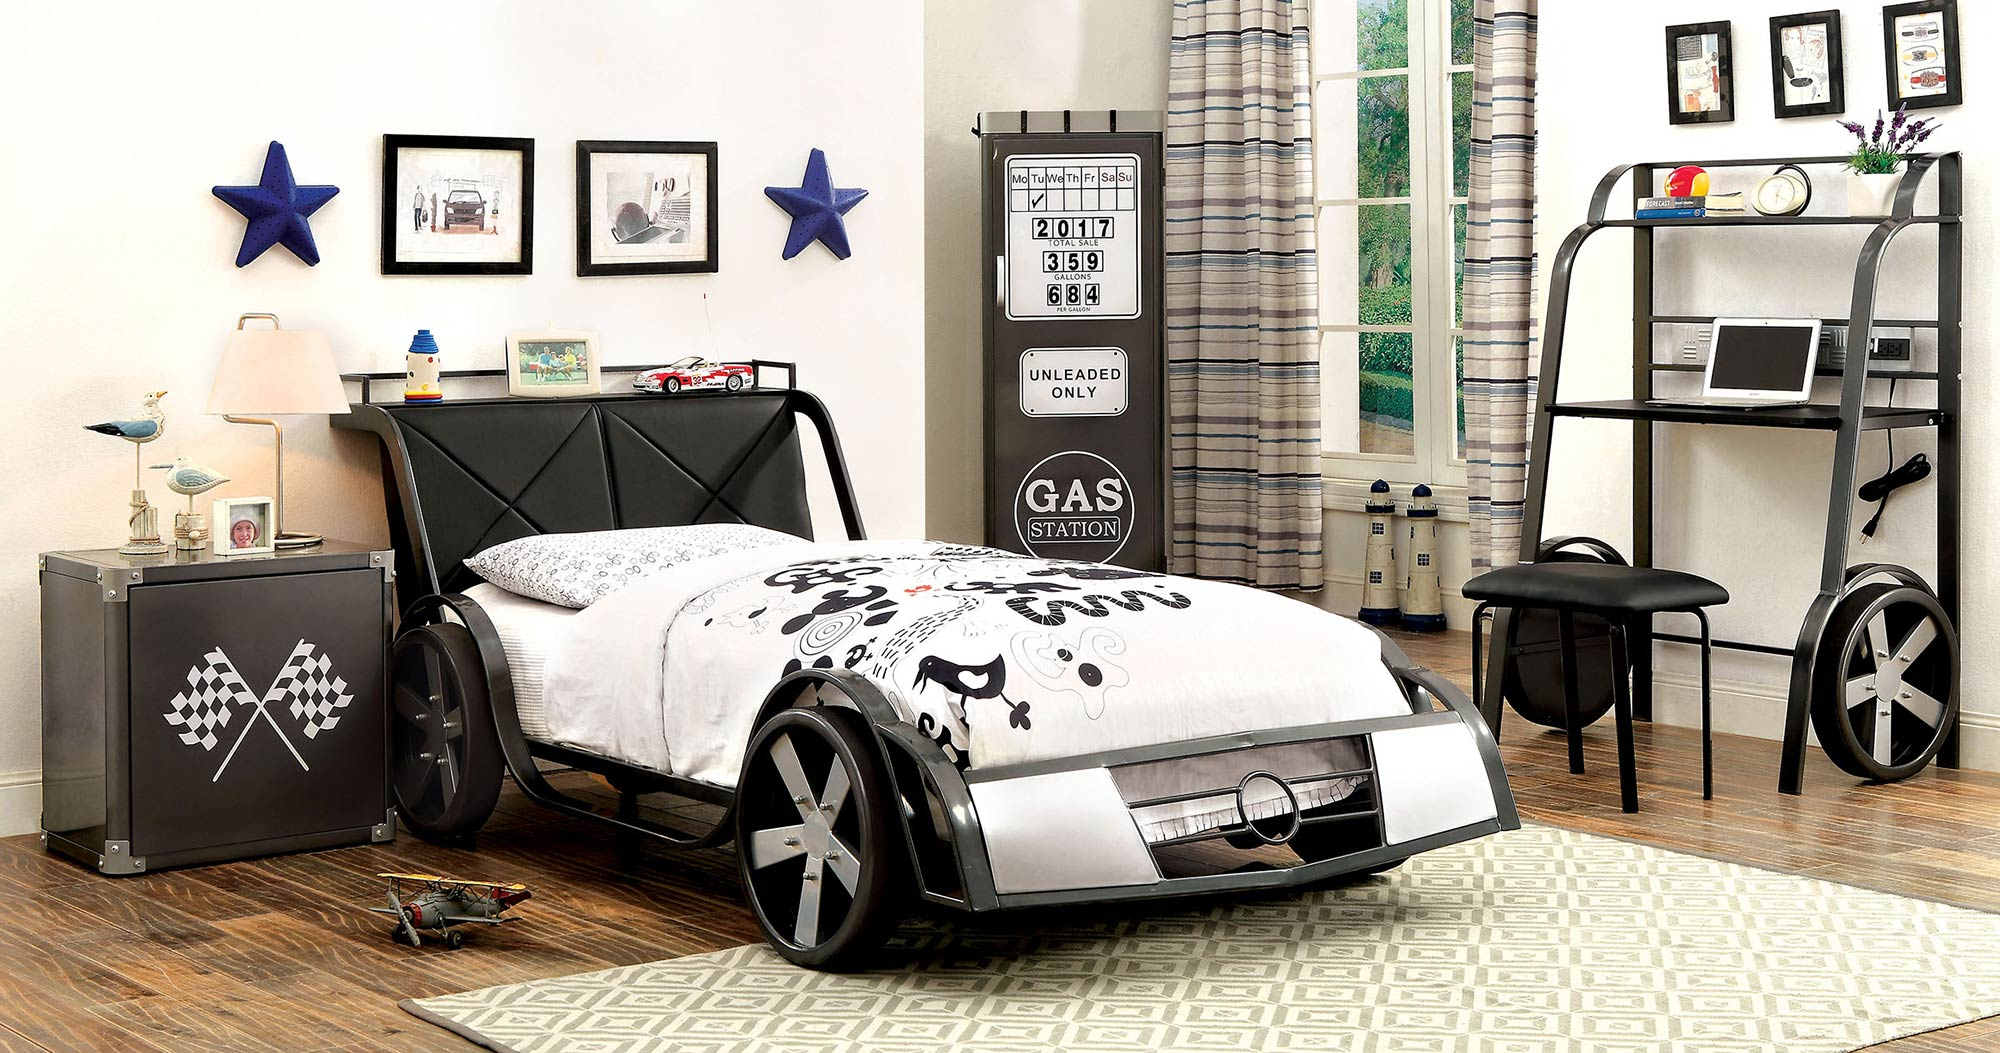 GT-Racer-Twin-Bed-$430-also-available-in-Full-Night-Stand-$138-Desk-$338-Closet-238